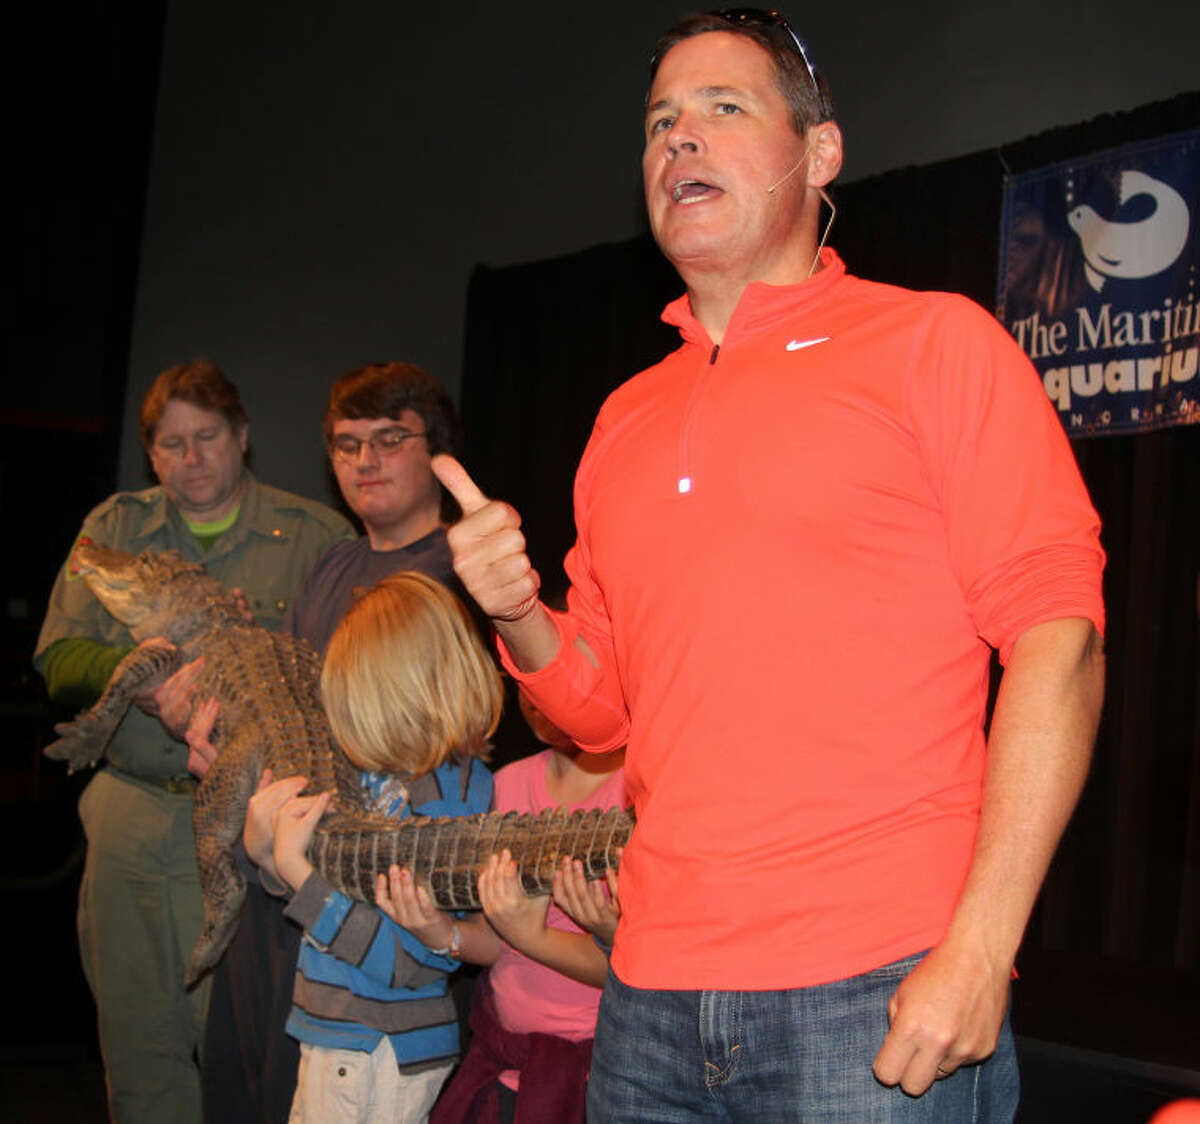 Hour photo / Chris Bosak Television host, biologist and conservationist Jeff Corwin talks to the crowd as professional reptile handlers and young volunteers hold an American alligator during Corwin's program at the Maritime Aquarium at Norwalk on Wednesday afternoon.